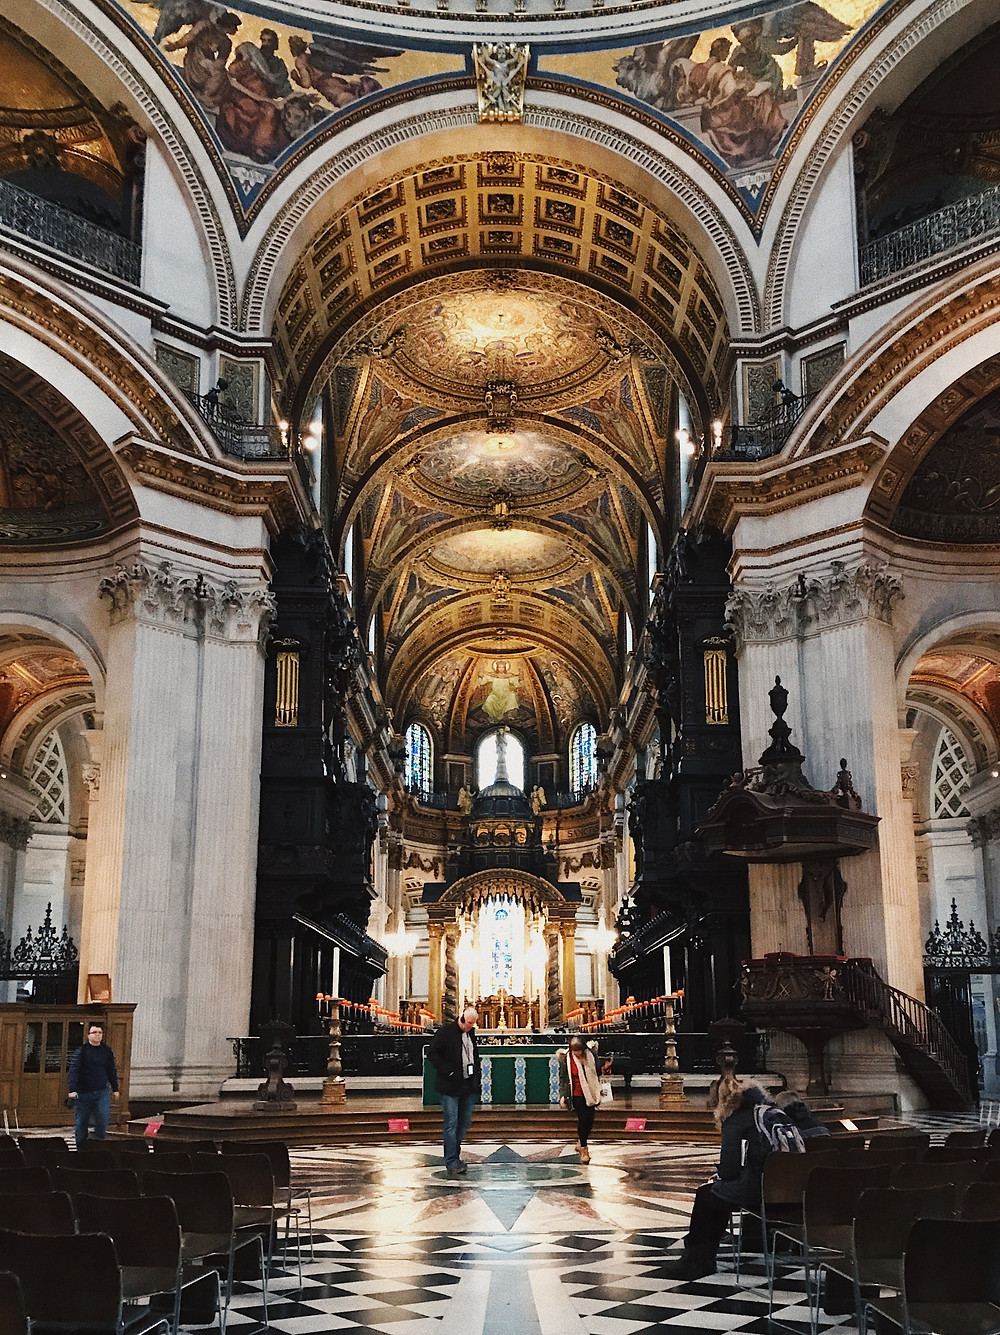 An interior photo of Saint Paul's Cathedral facing the Quire and High Altar